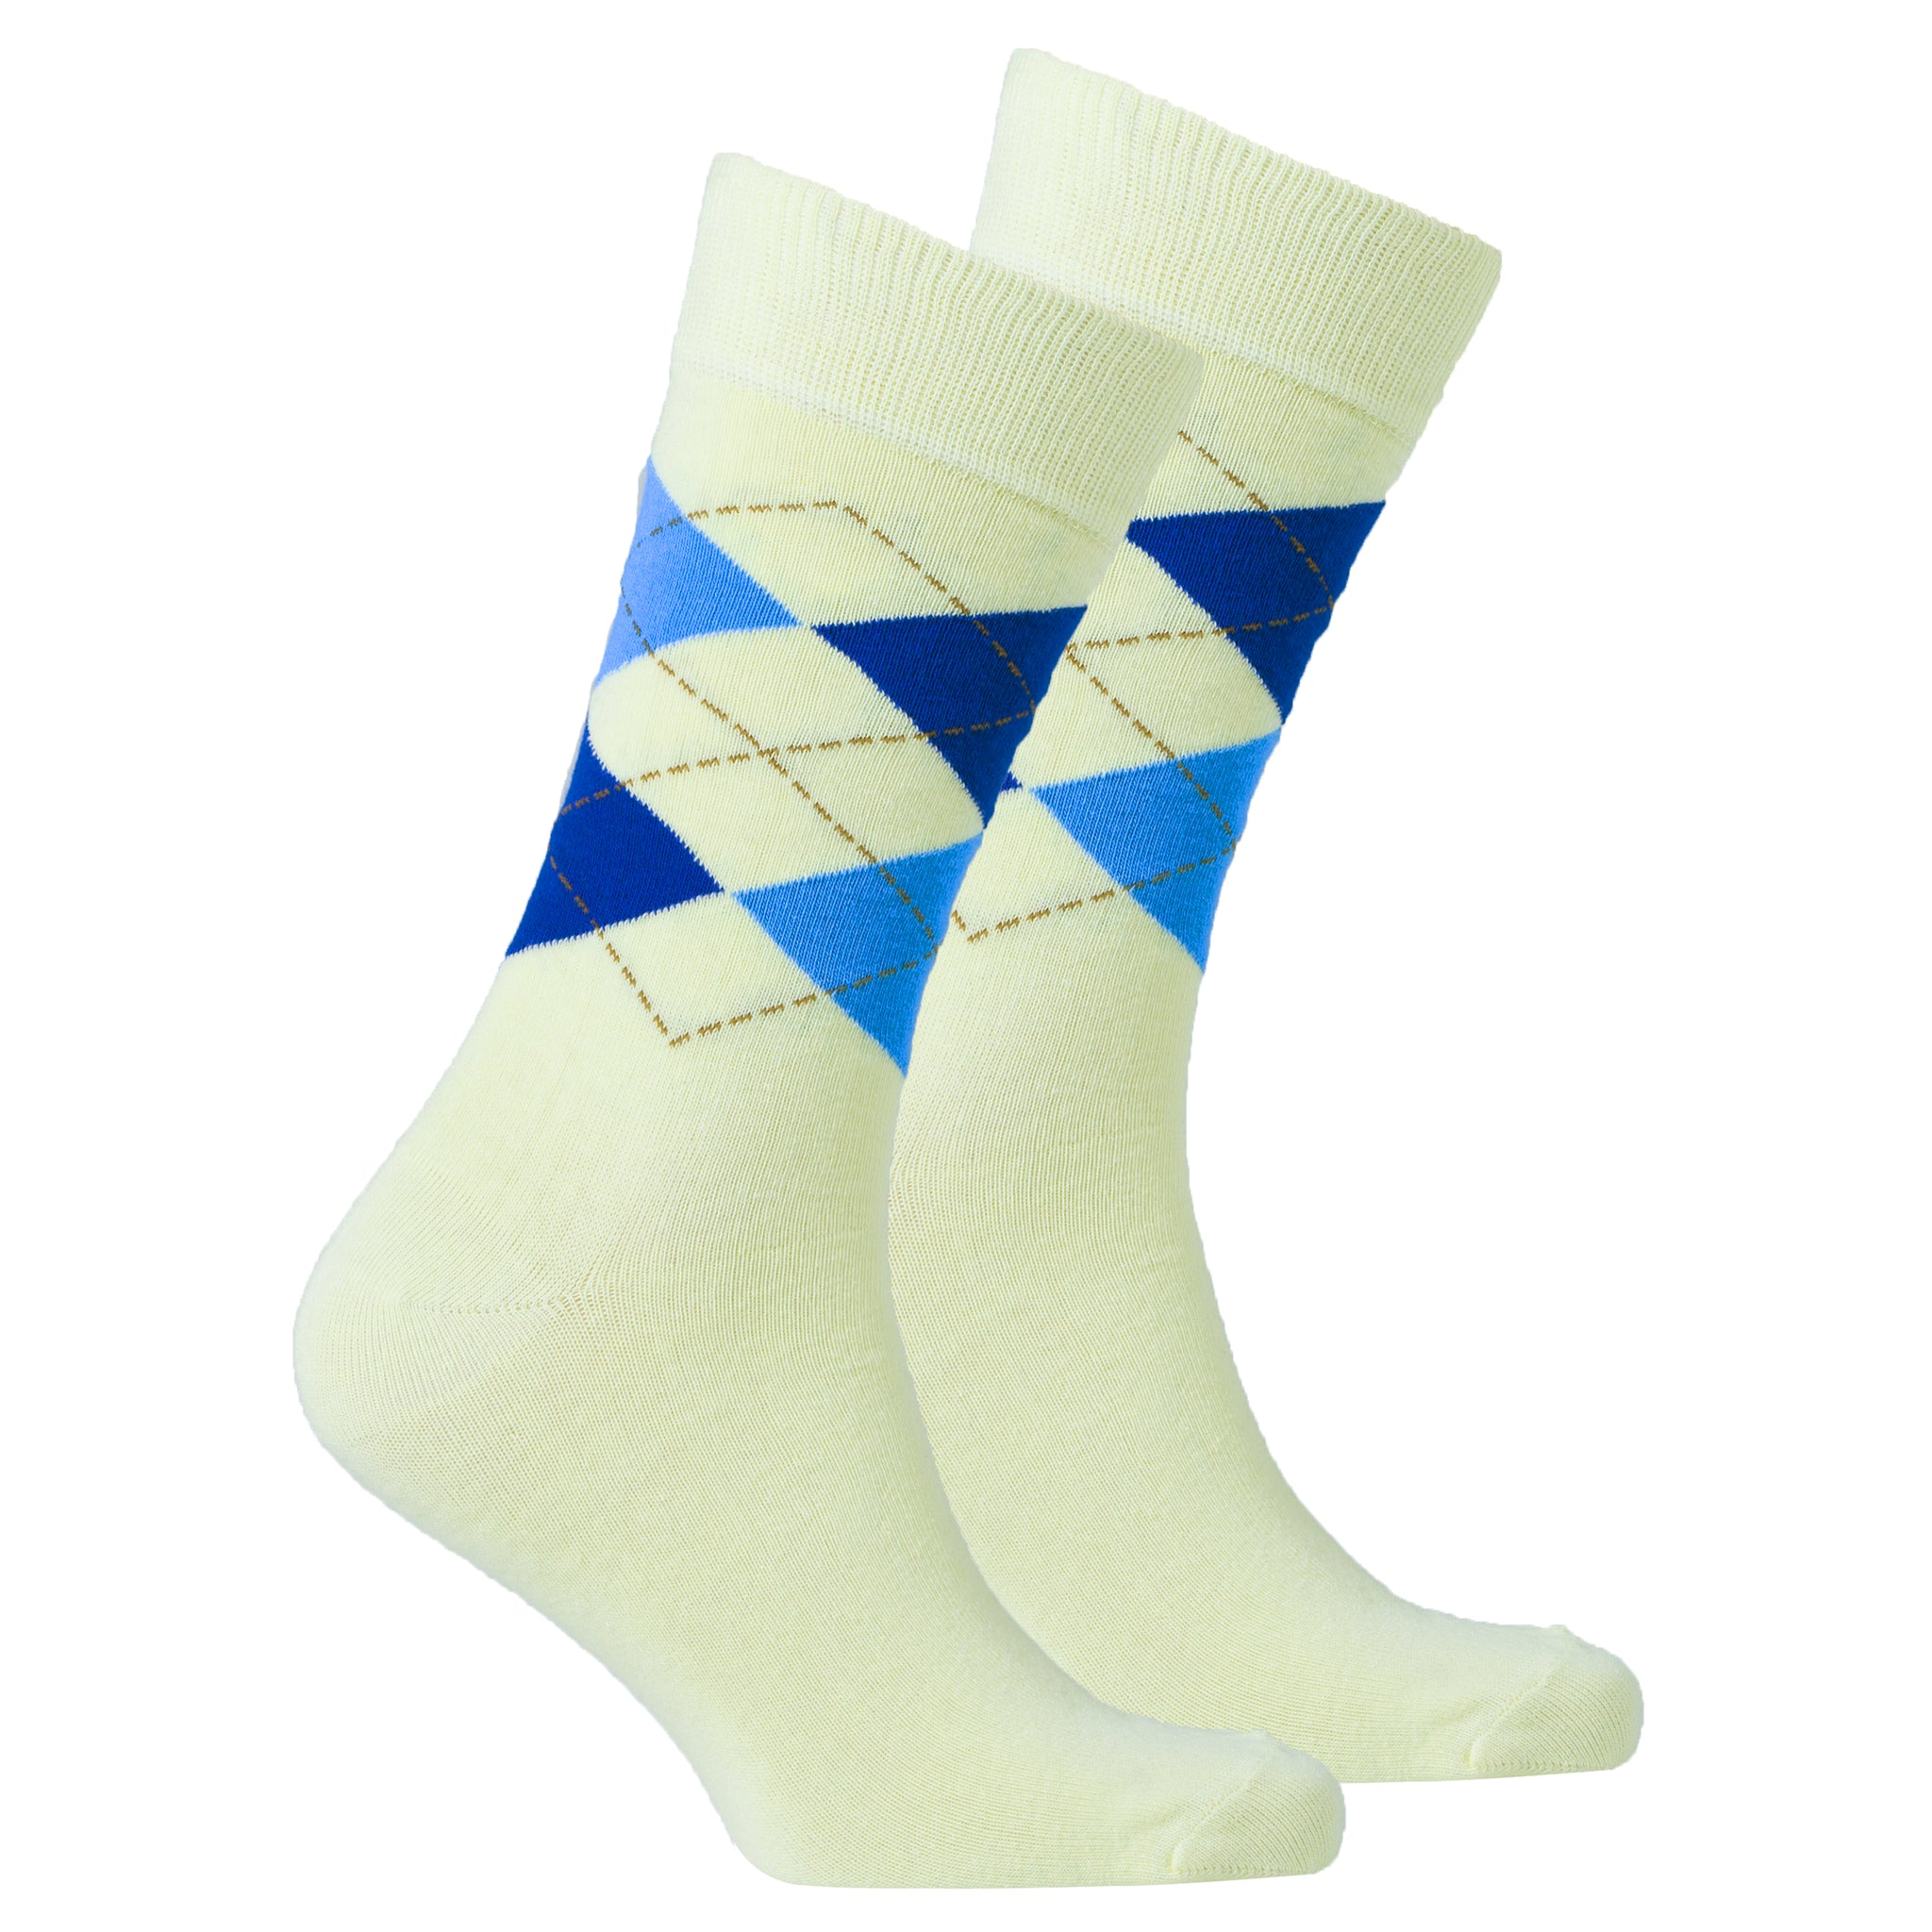 Men's Blonde Argyle Socks